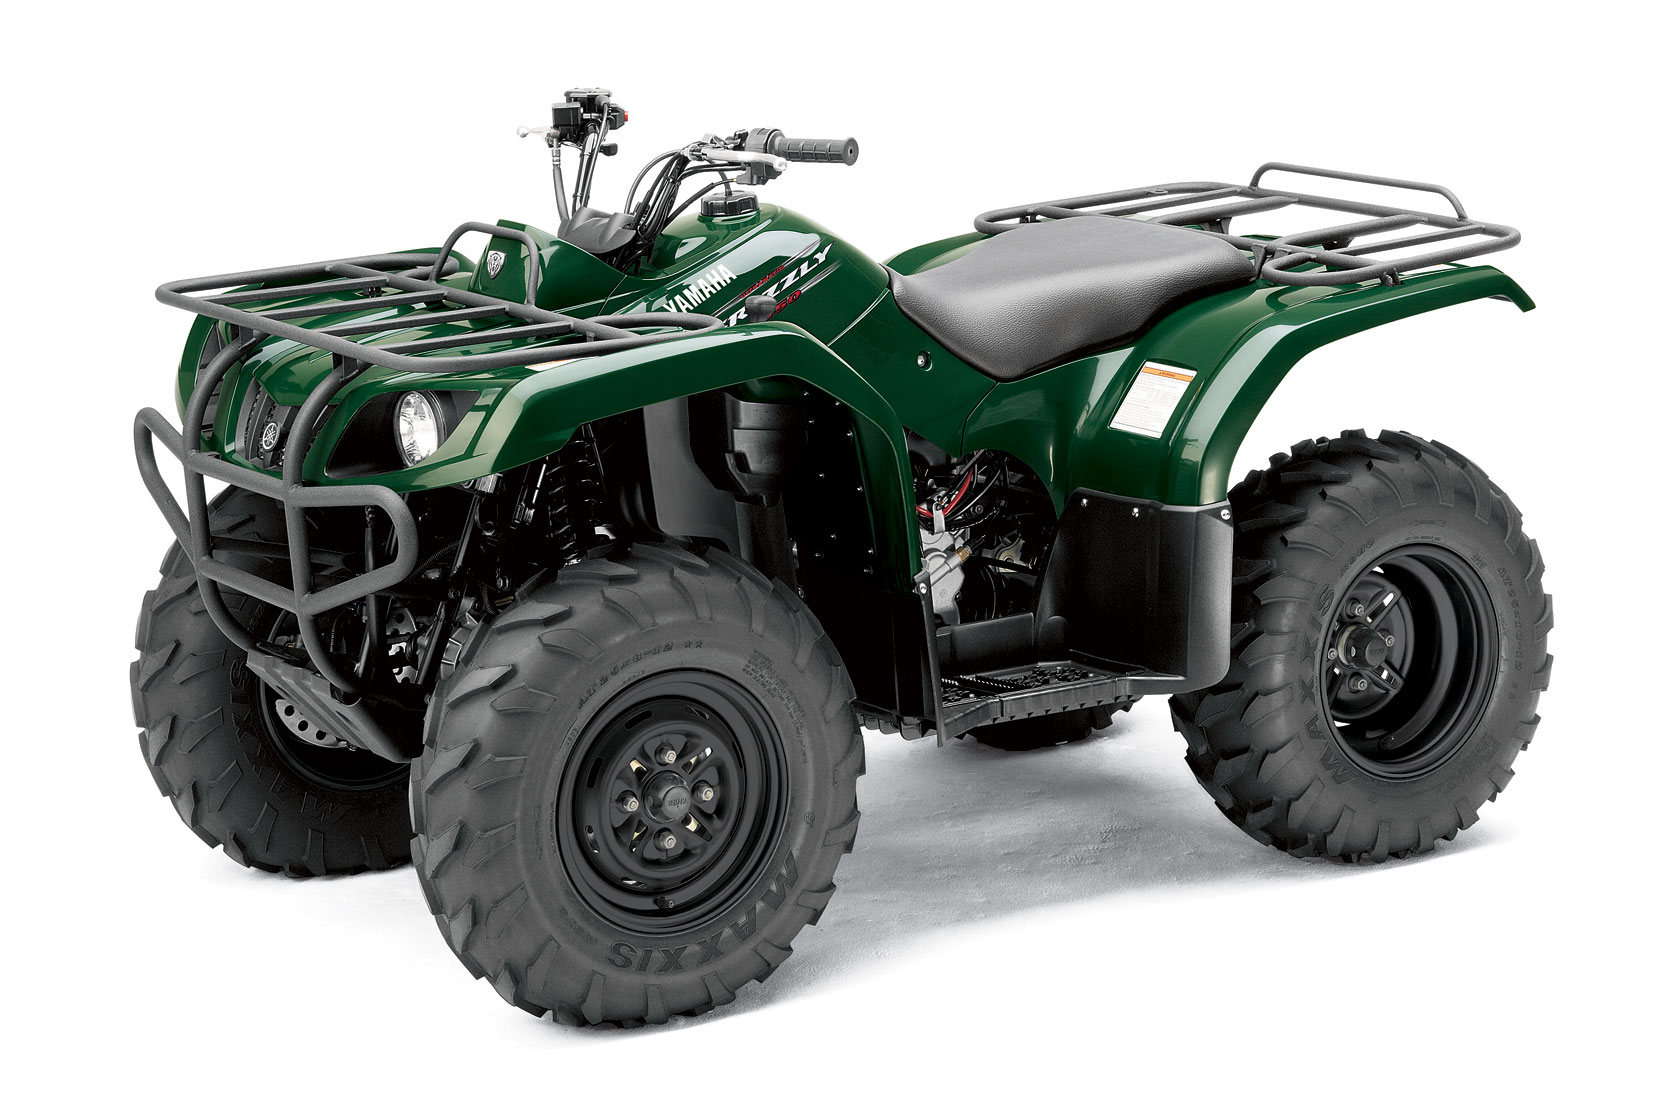 Yamaha grizzly 350 4x4 specs 2010 2011 autoevolution for Yamaha 350 4x4